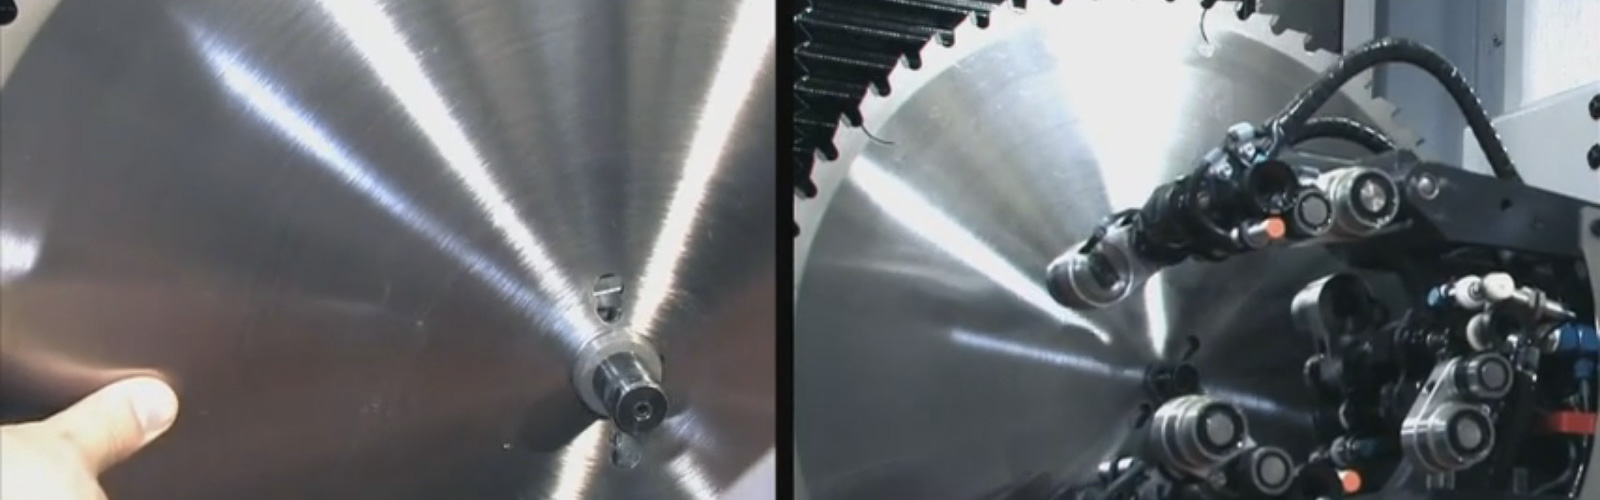 Sawblade Sharpening